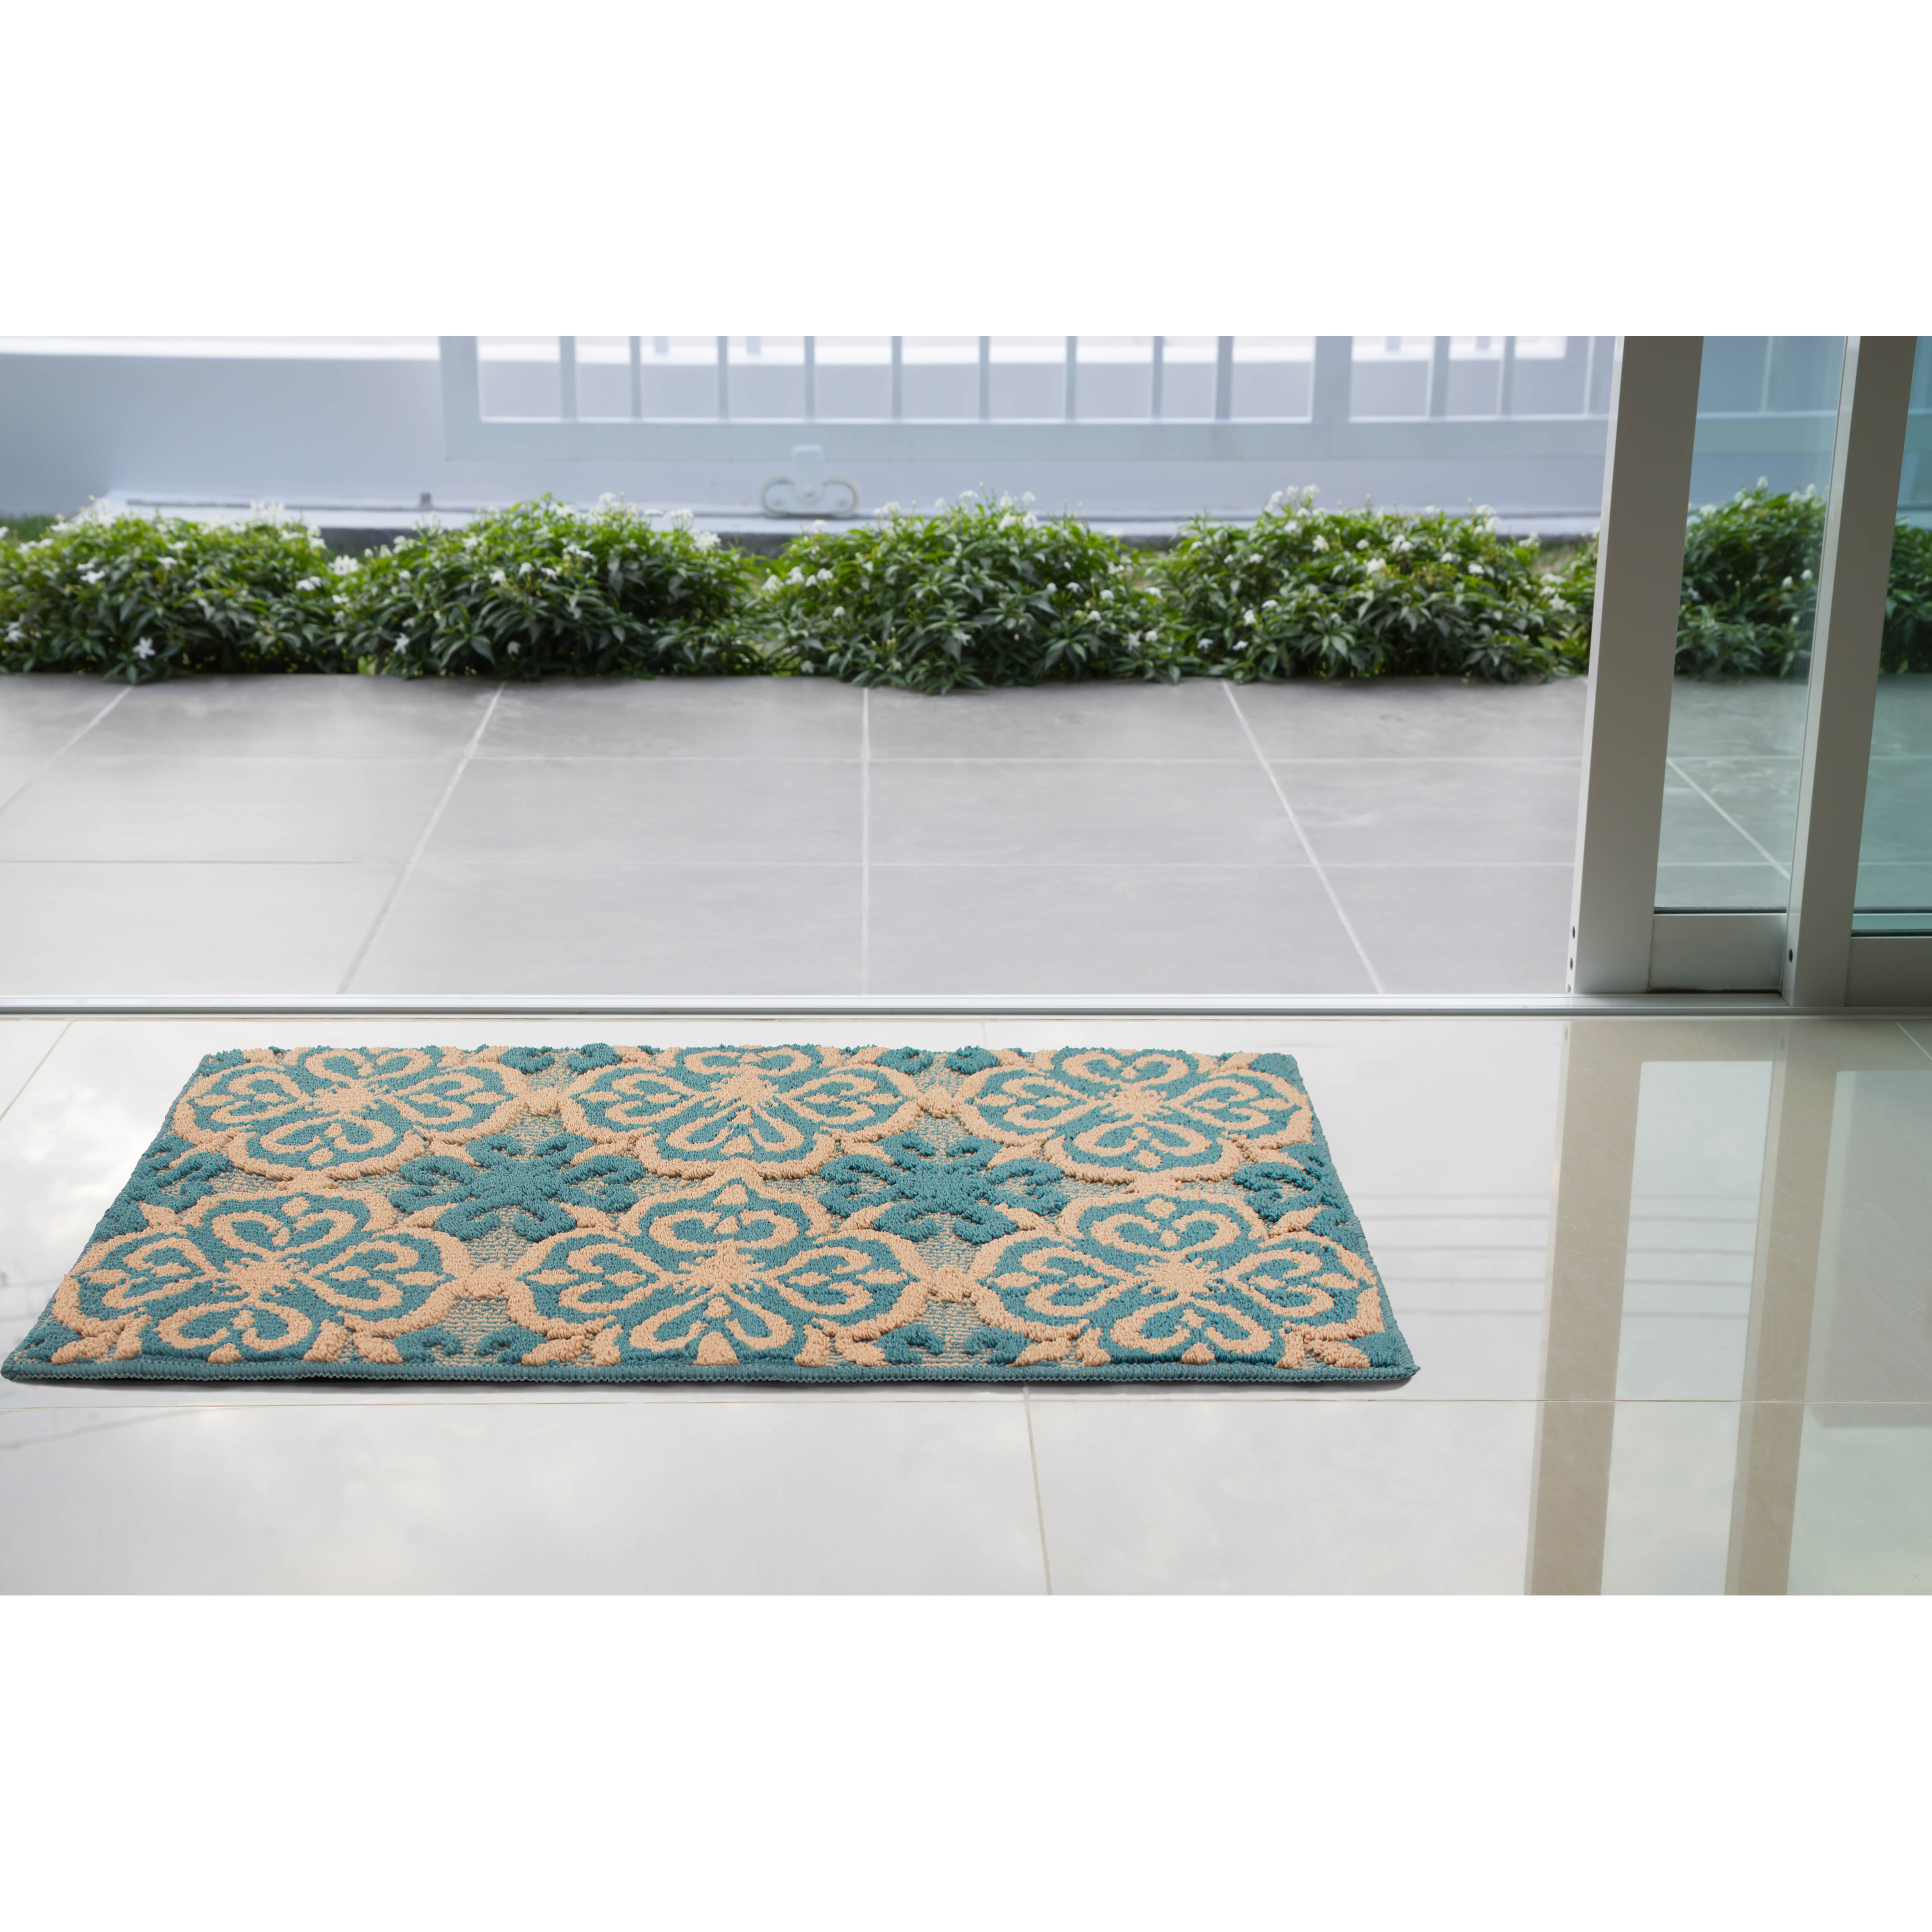 Jean Pierre Gianne 24 x 40 in. Loop Accent Rug by YMF Carpets Inc.